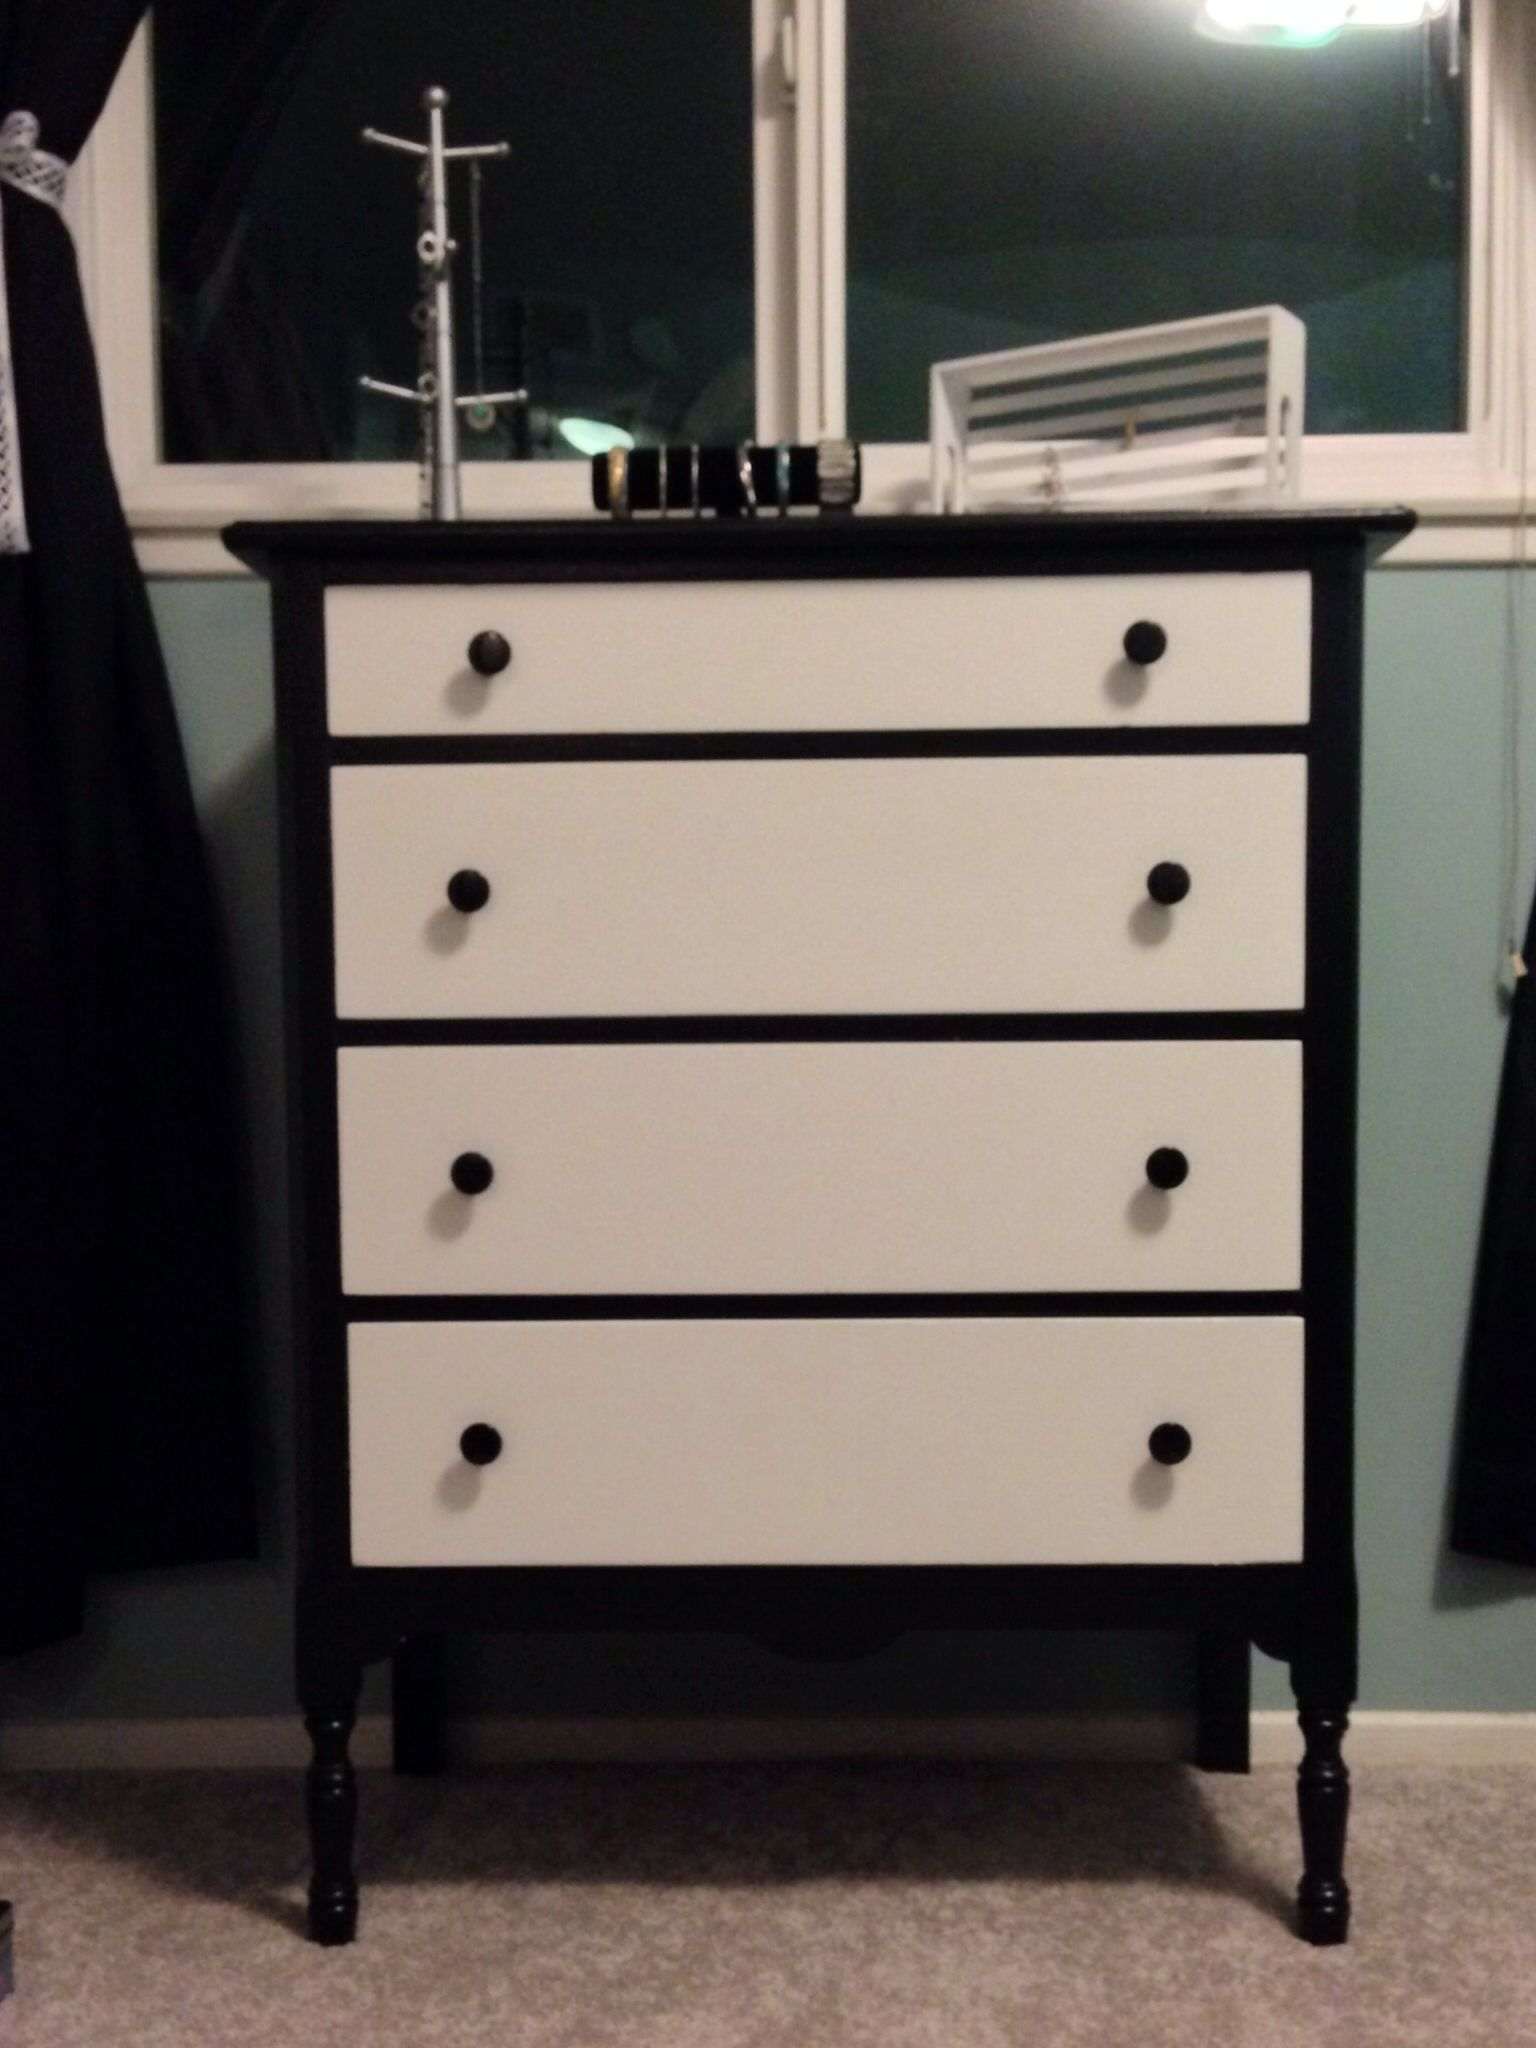 black and white dresser things i could put in my house pinterest dresser bedrooms and room. Black Bedroom Furniture Sets. Home Design Ideas